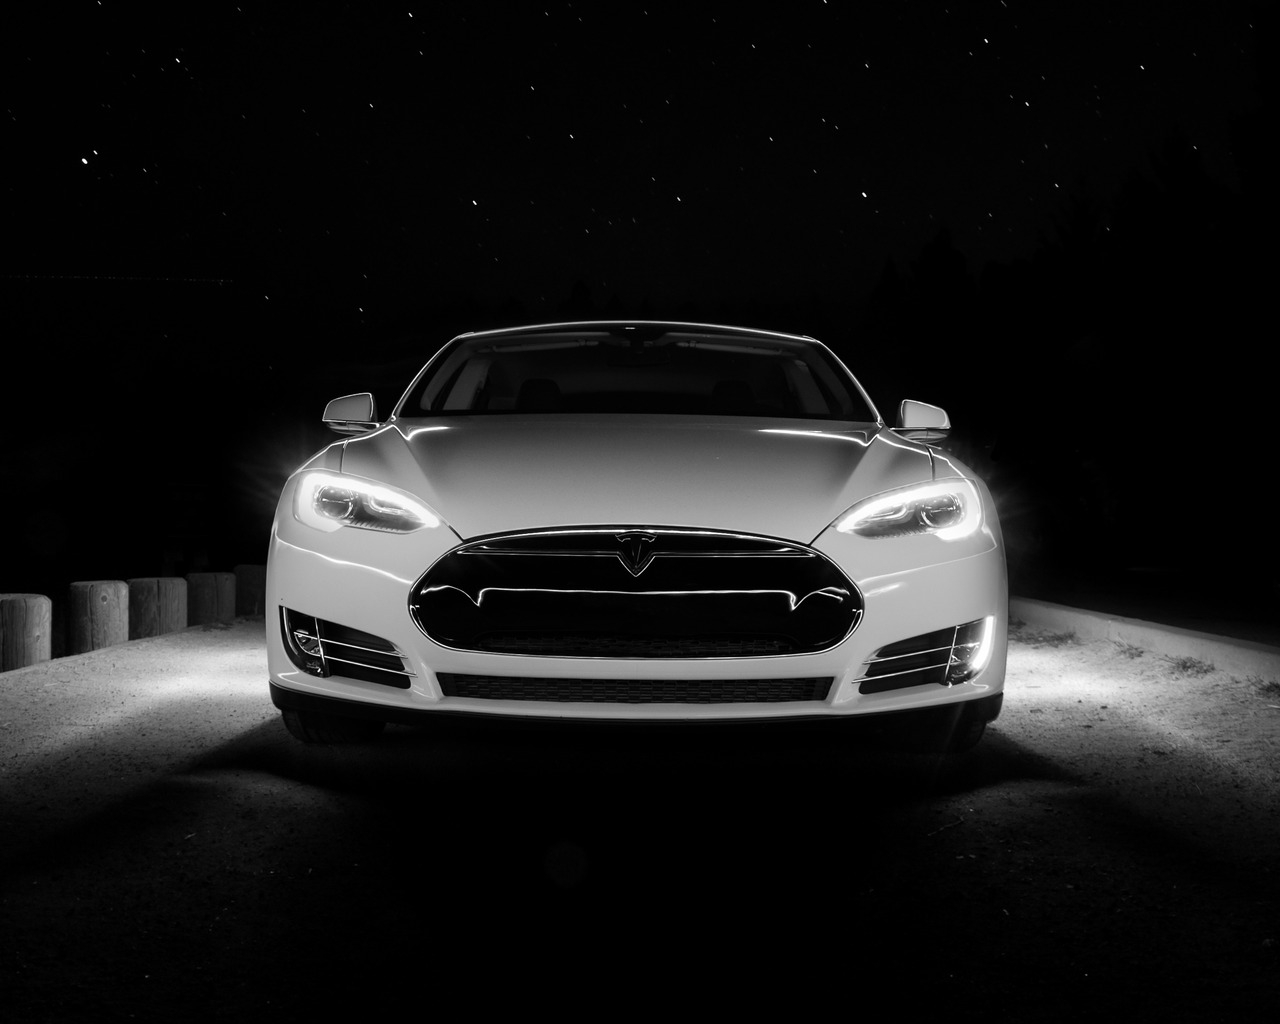 White Tesla Front  for 1280 x 1024 resolution